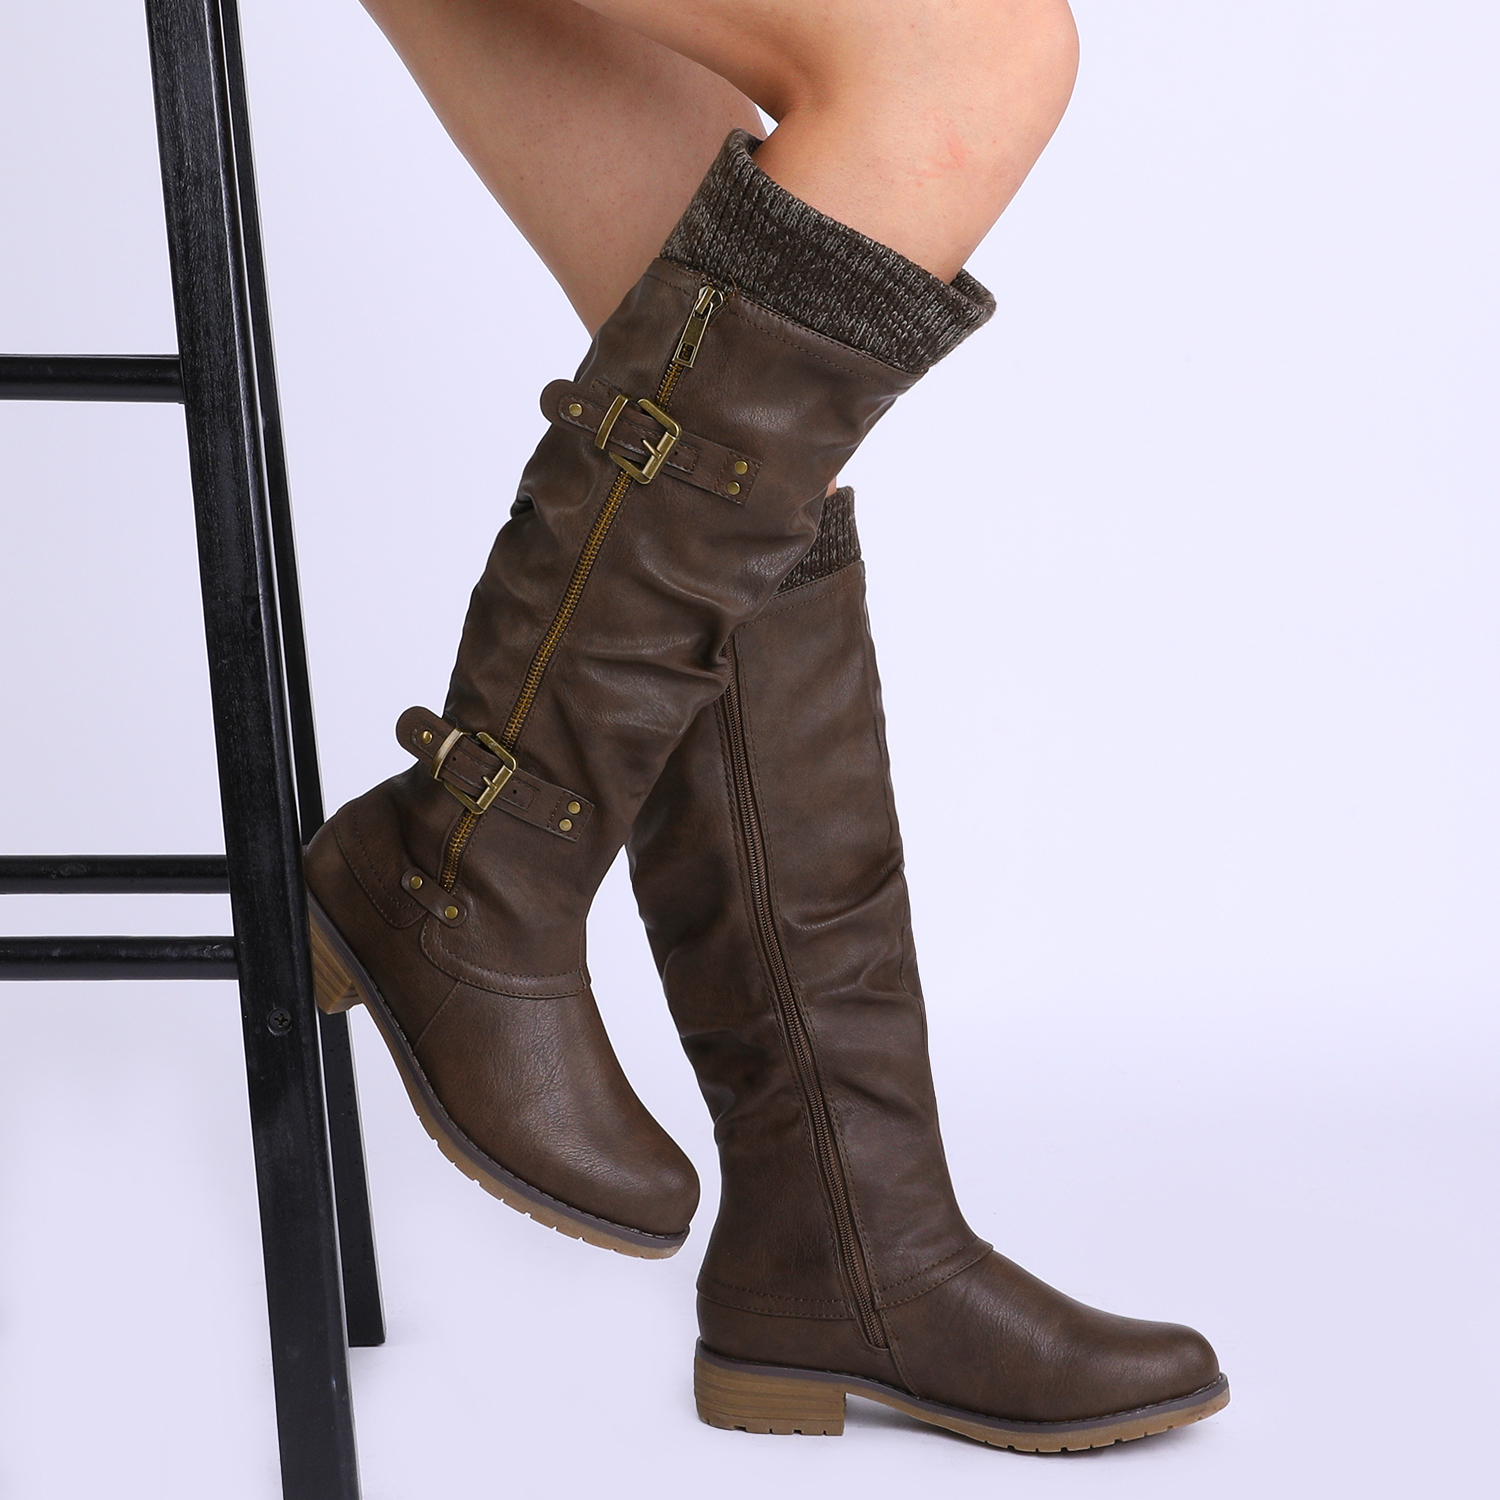 DREAM-PAIRS-Womens-DEPP-Cowgirl-Soft-PU-Leather-Combat-Knee-High-Riding-Boots thumbnail 18